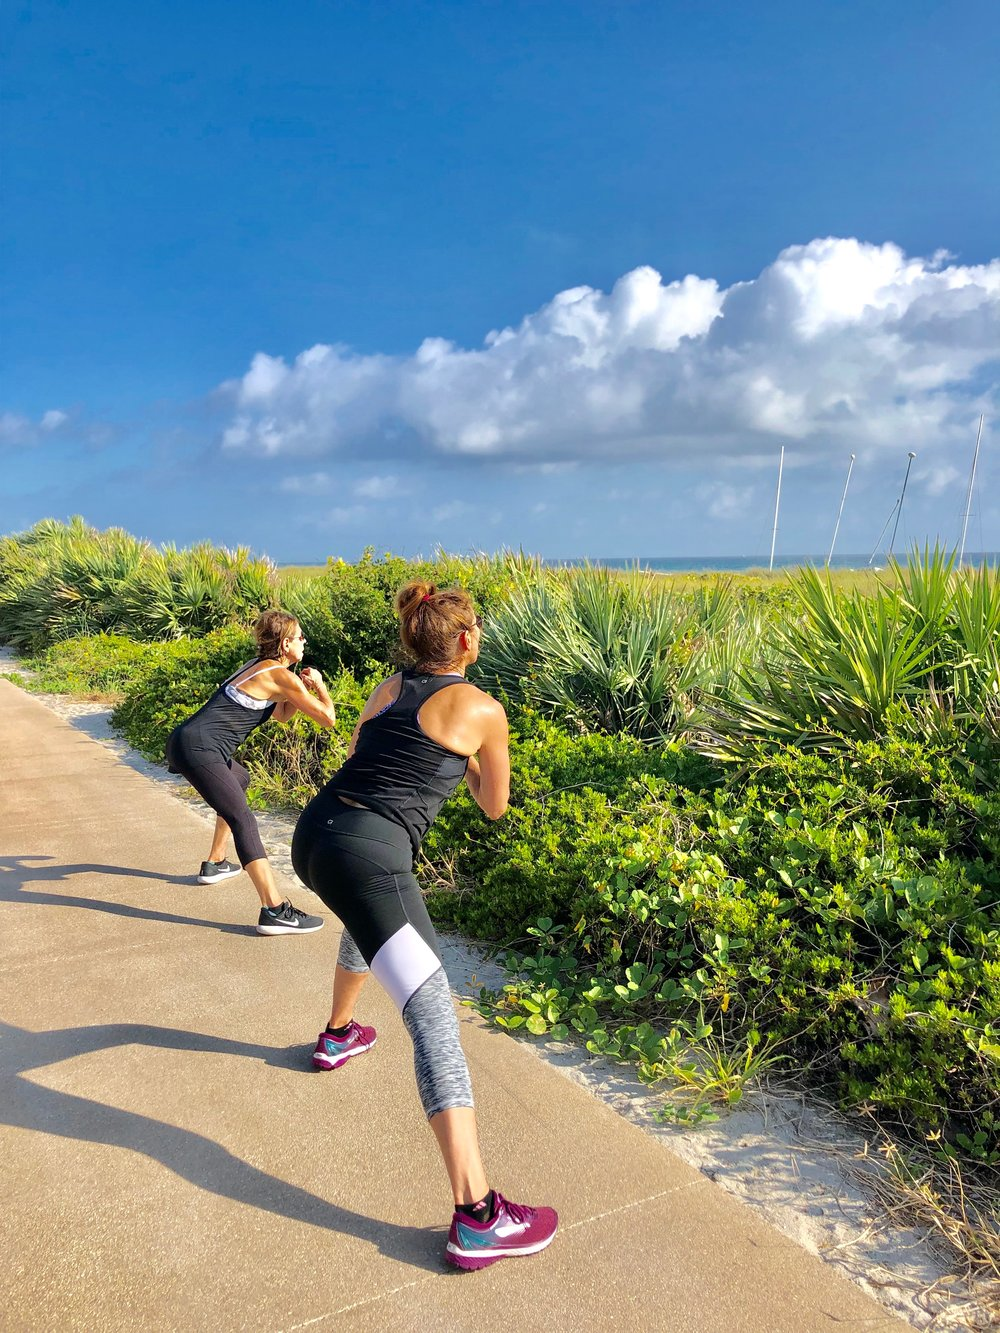 Ladies working out to jumpstart their weight loss during the morning beach session.